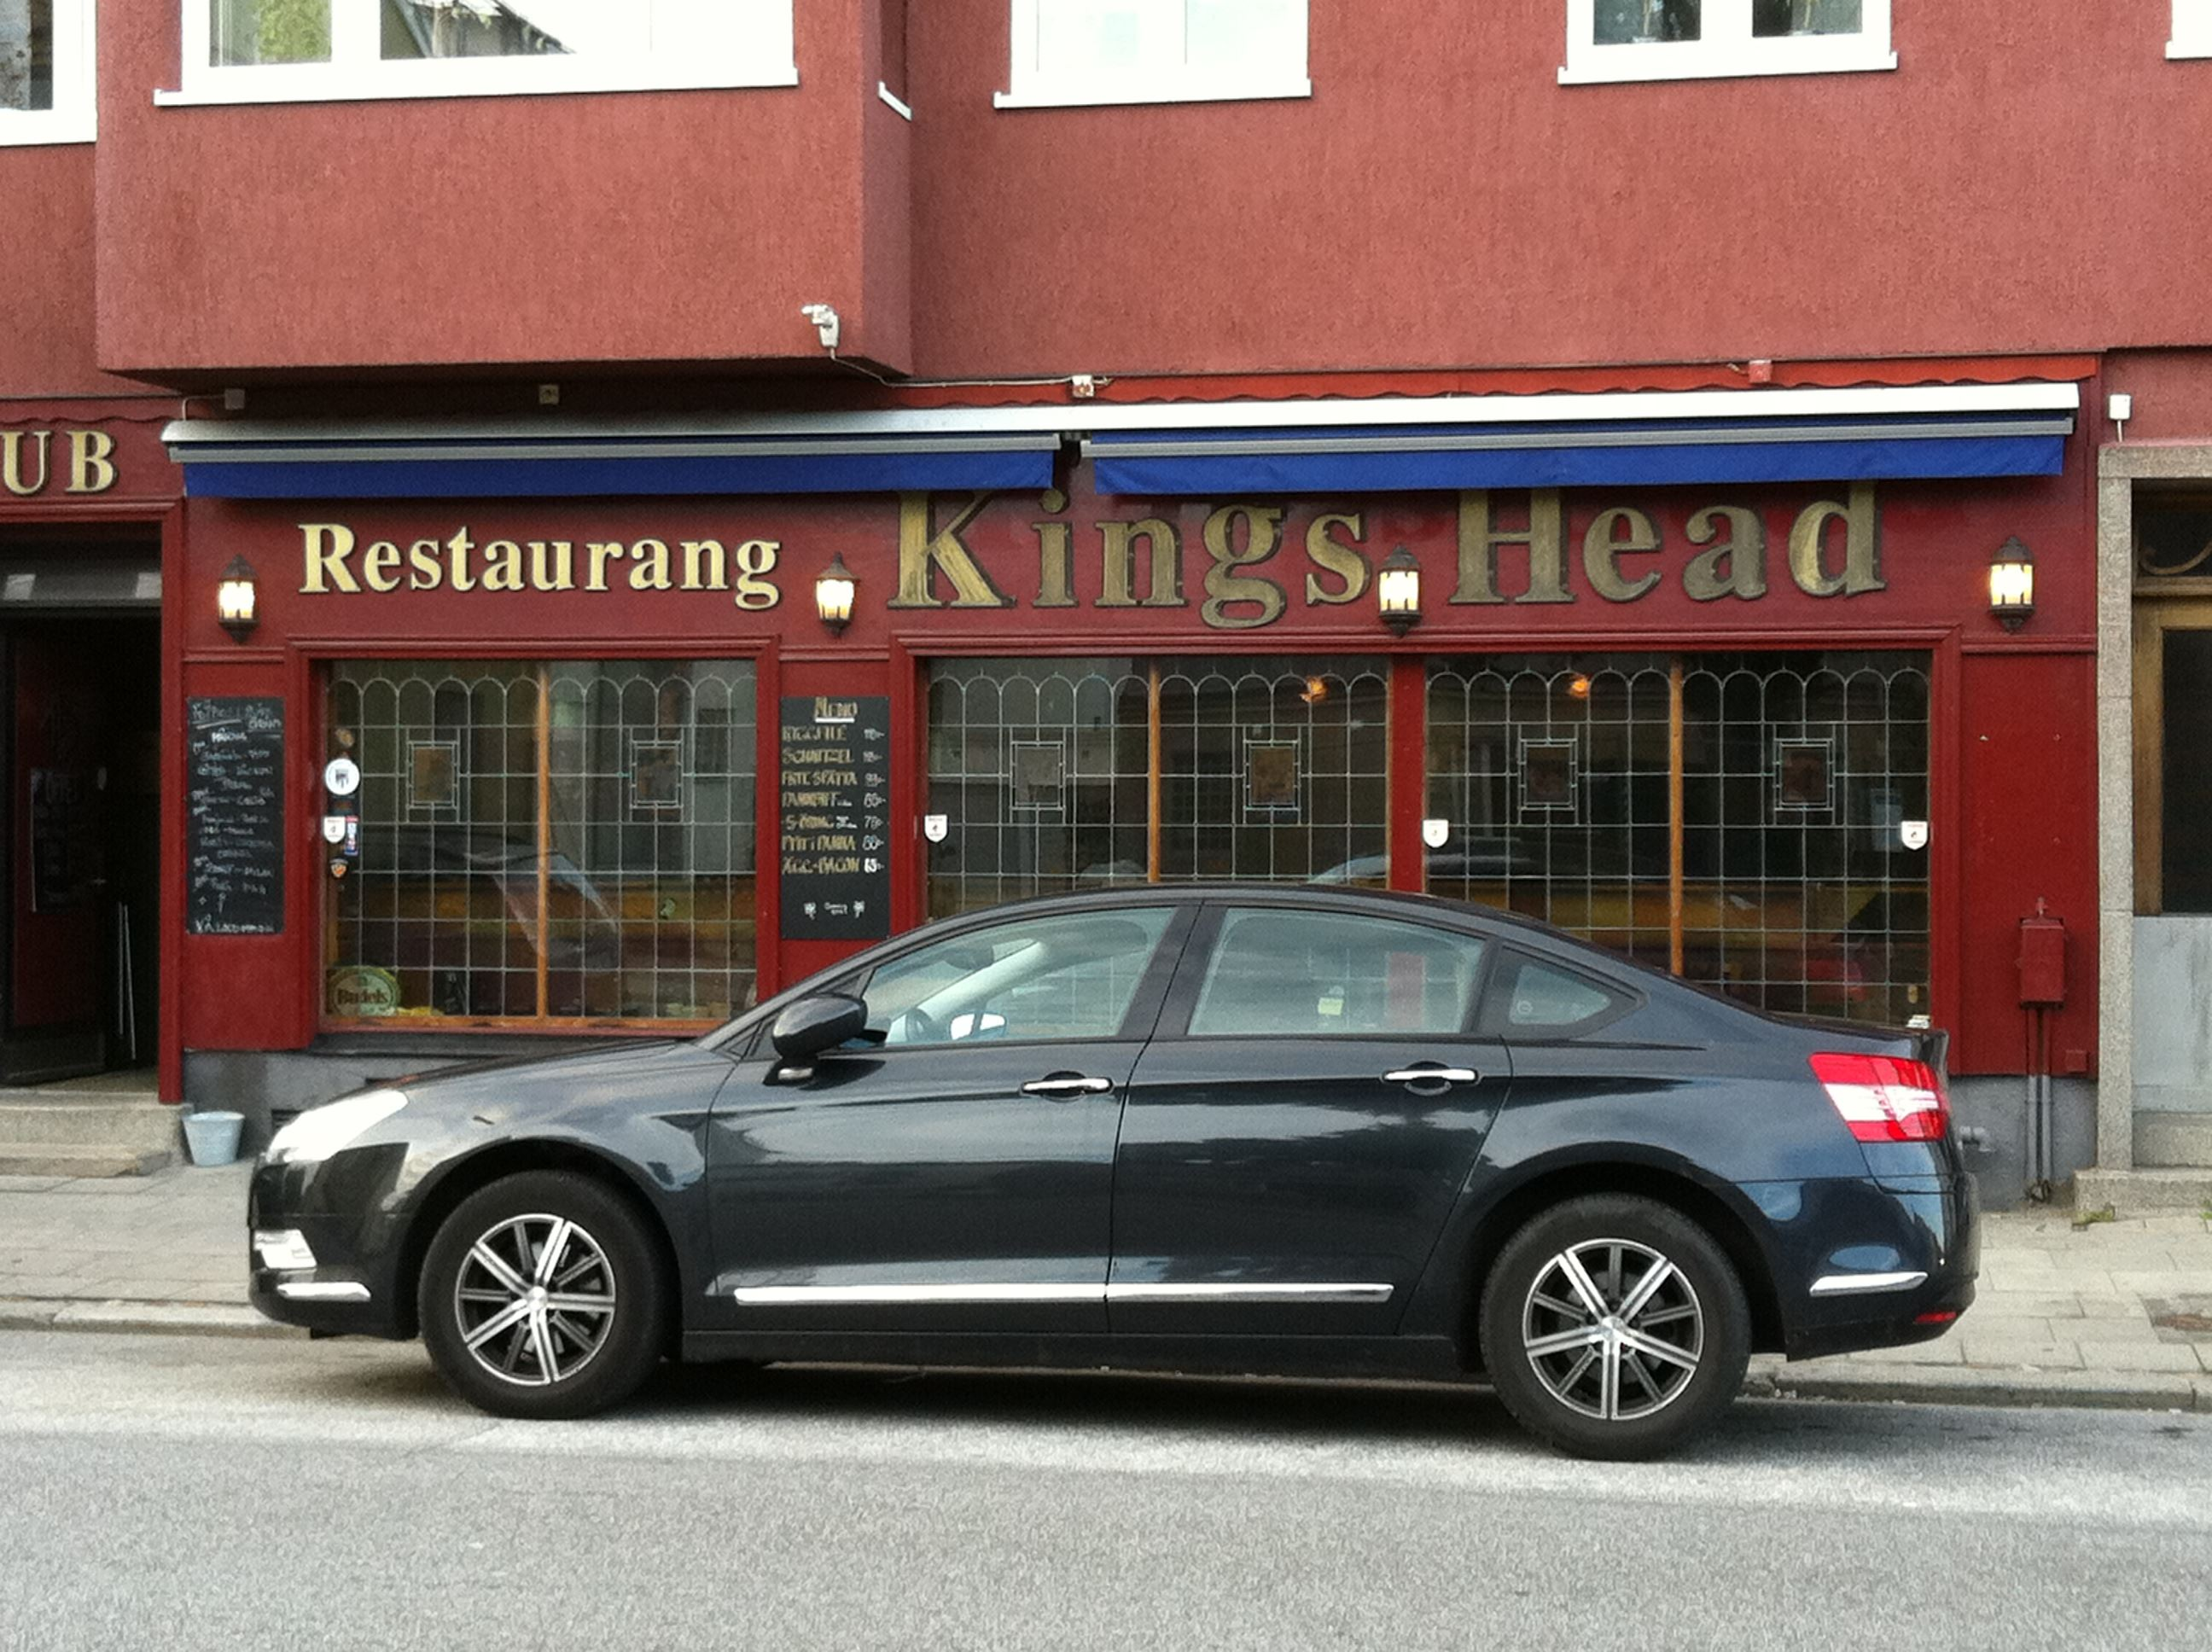 Kings Head Pub & Restaurang